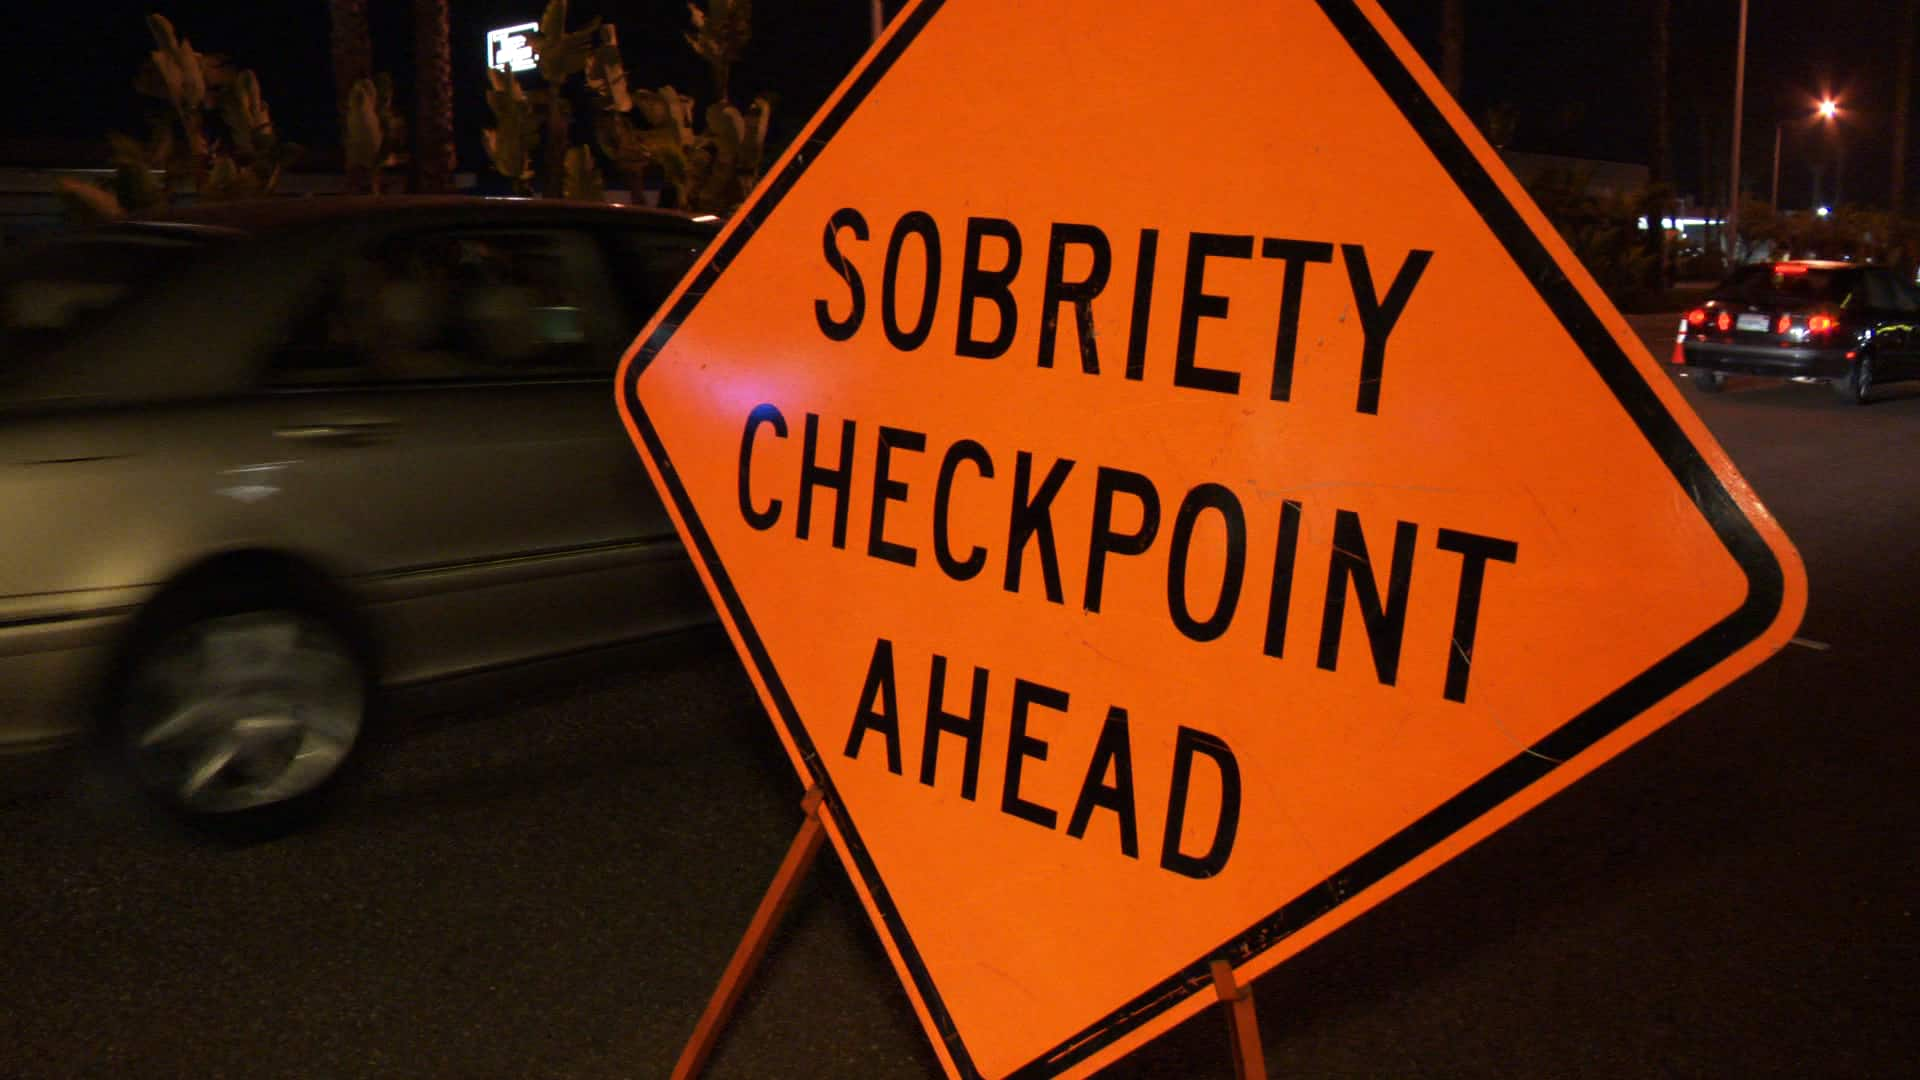 Indiana, sobriety, attorney, dui, legal, lawyer, sr22, non-owner, non-driver, without a car, checkpoint, rehab, IN